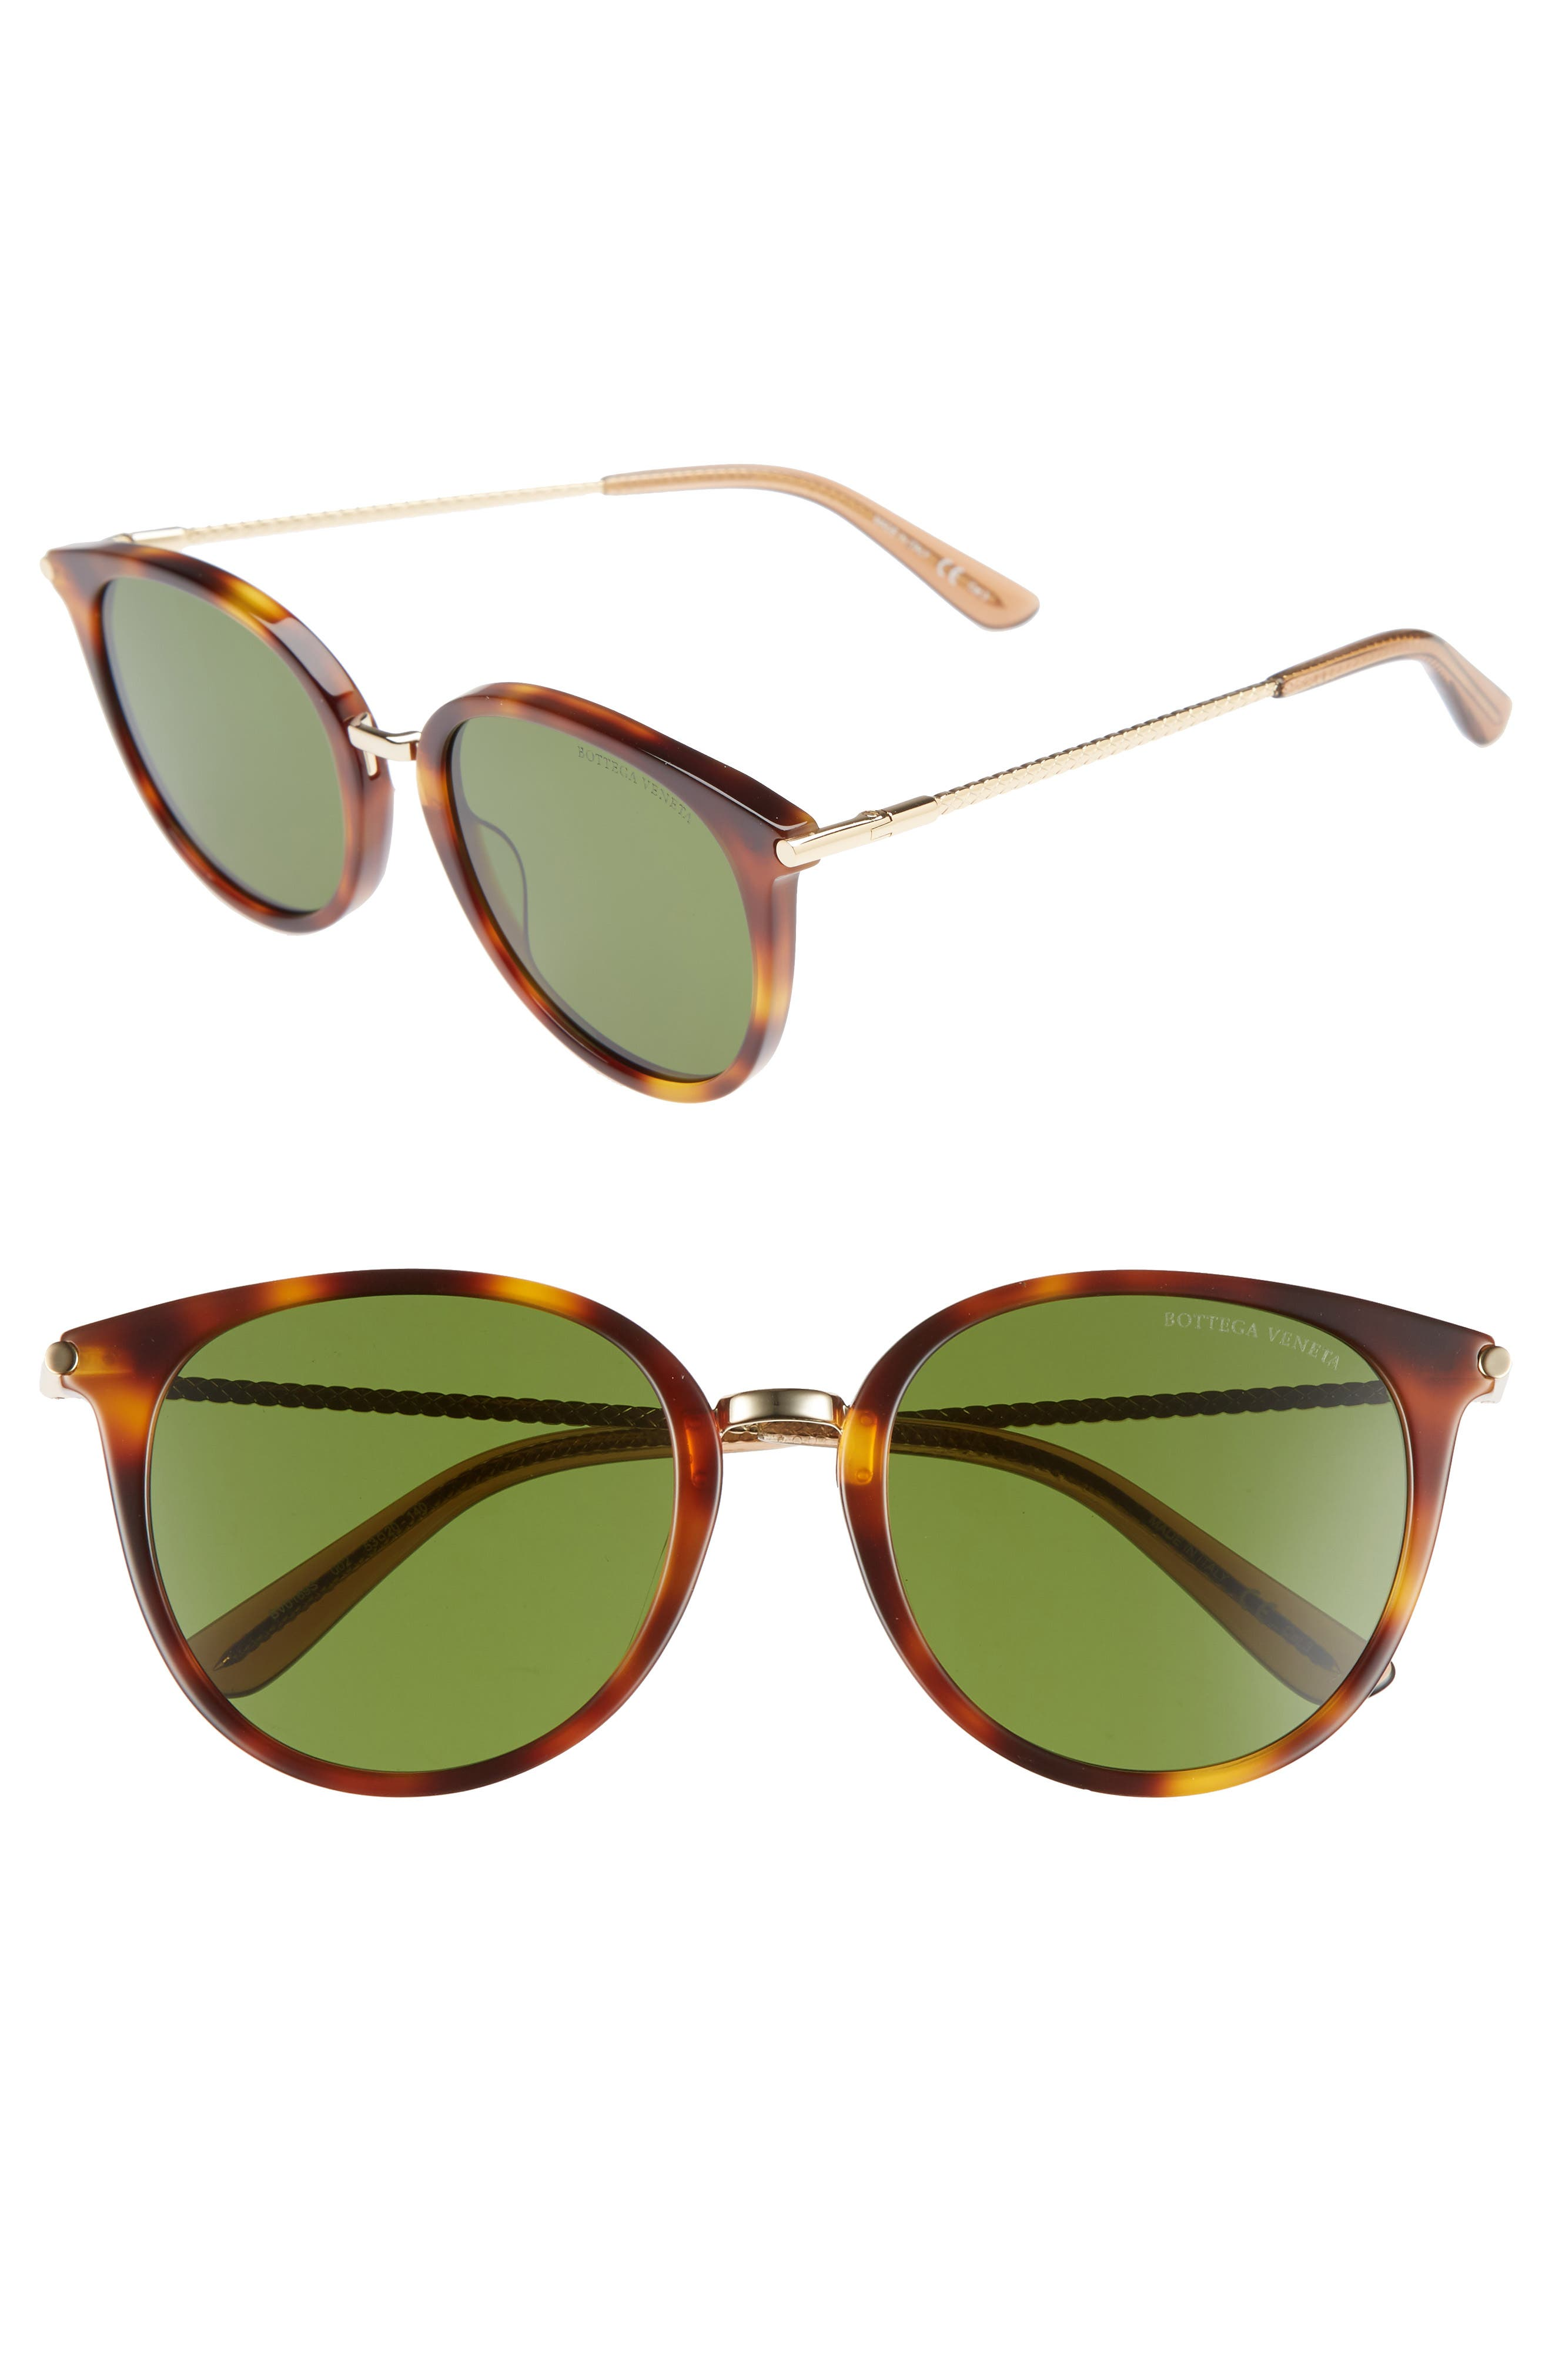 53mm Sunglasses,                         Main,                         color, Brown/ Gold